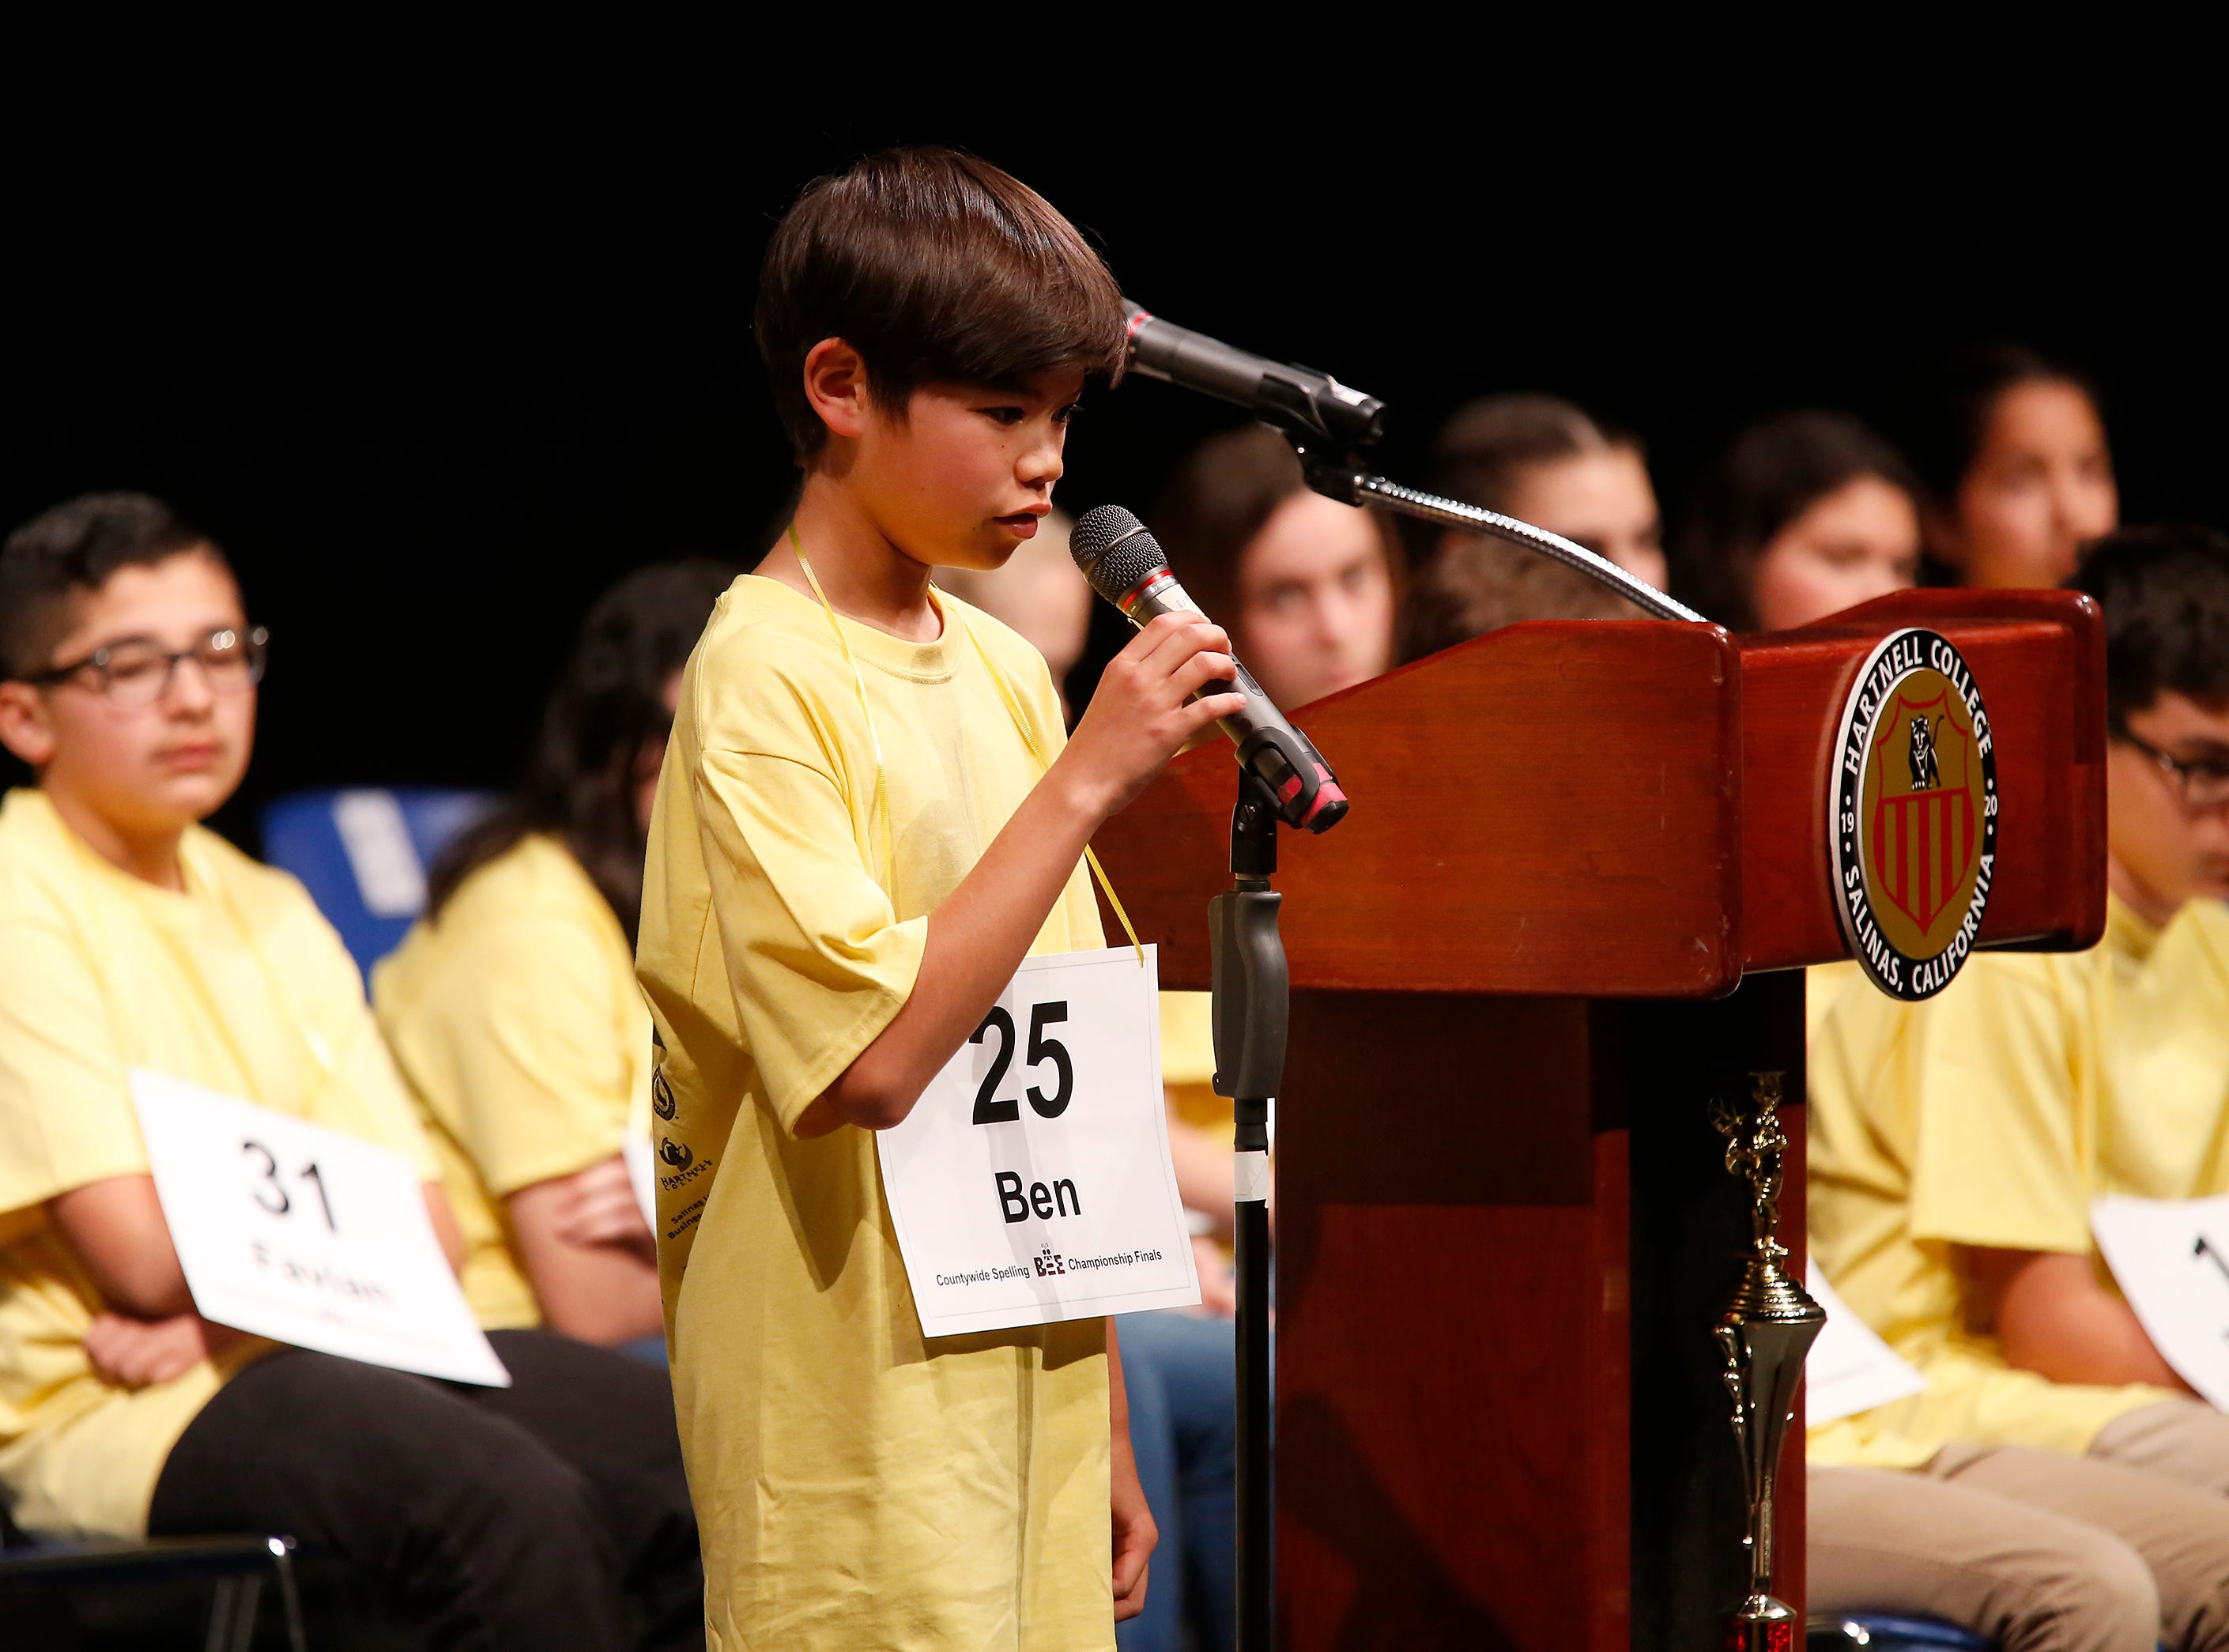 Lincoln Elementary School sixth-grader Ben Douglas Knapp spells out a word during the Monterey County Office of Education's 2019 Countywide Spelling Bee.